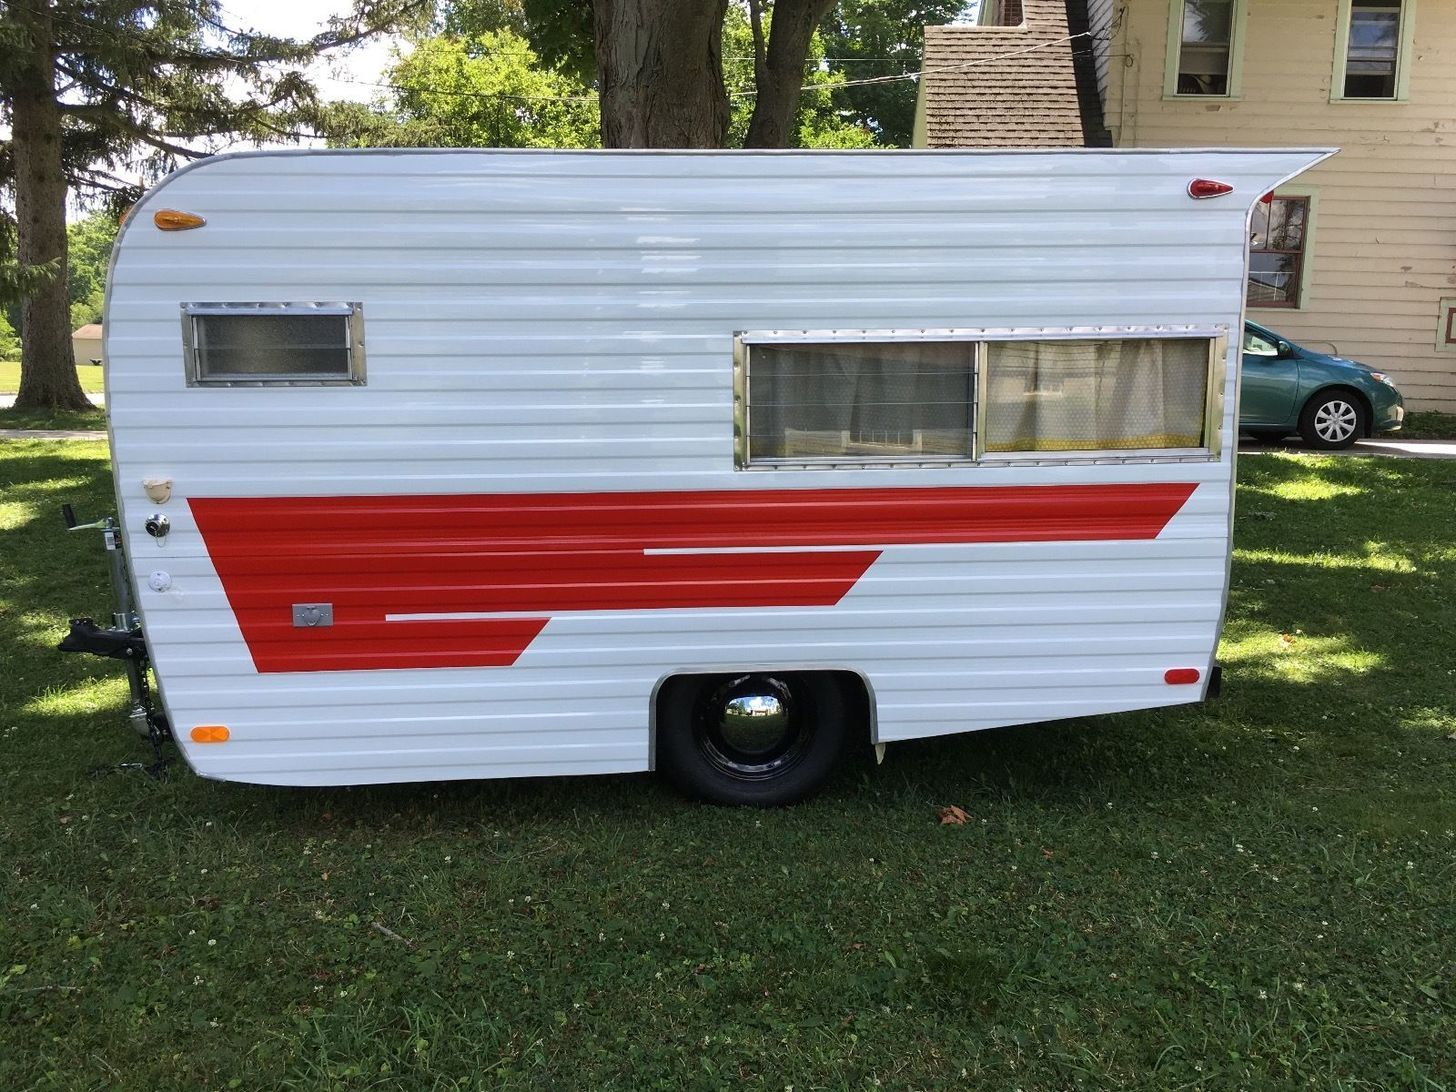 A Friend And I Professionally Renovated Canned Ham Camper Trailer 1969 Cardinal